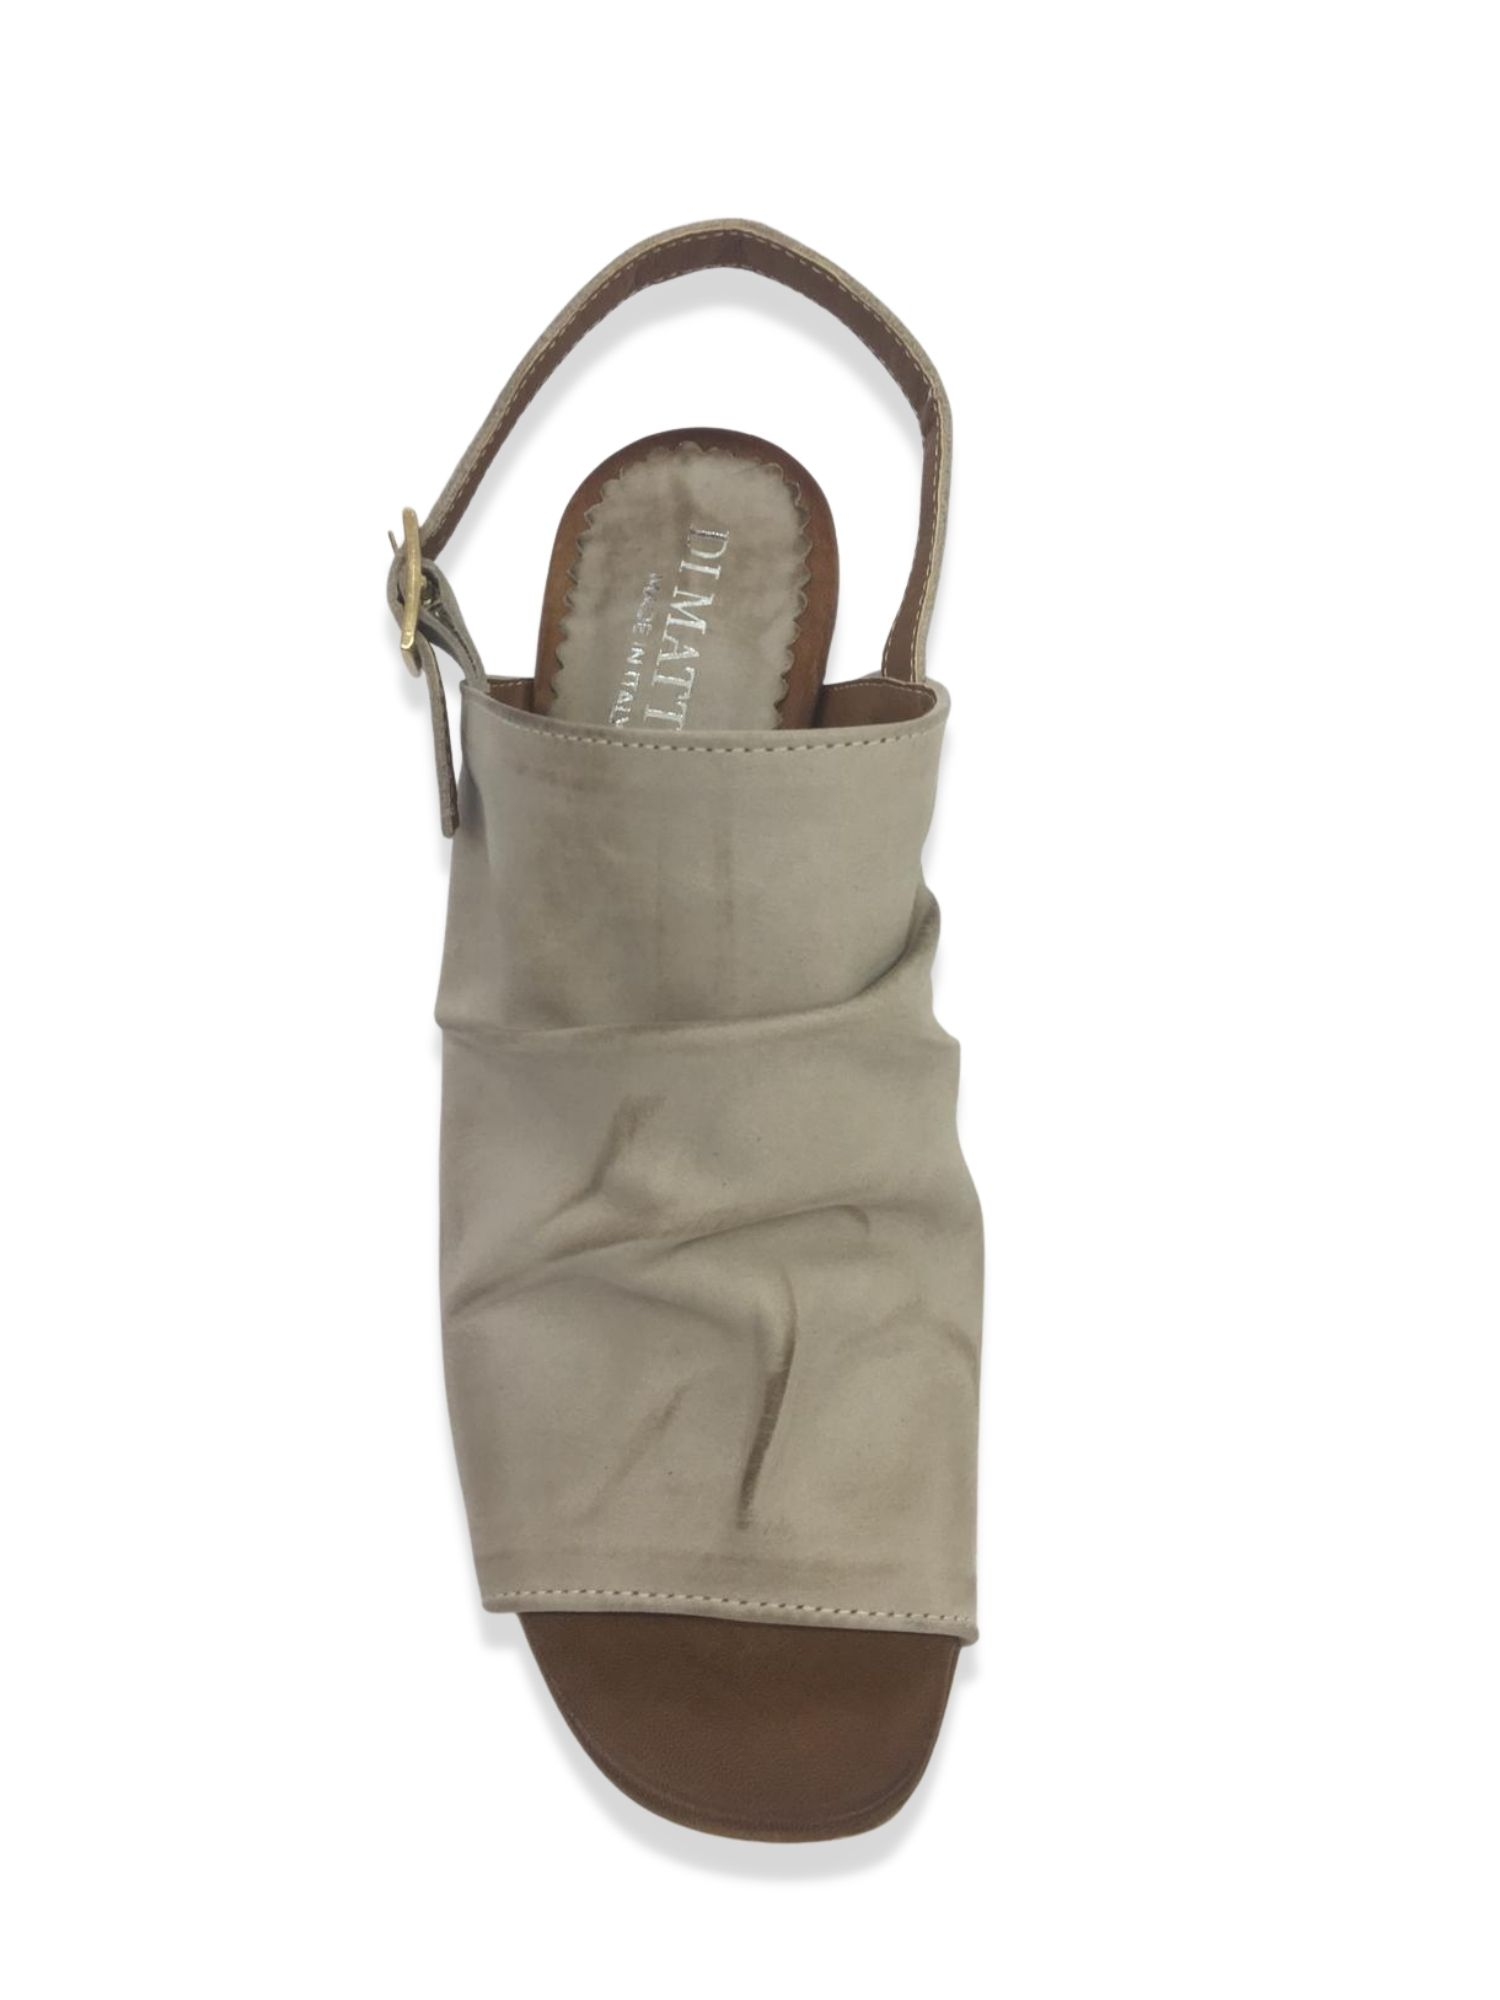 Sandalo Sabot Made in Italy 106 Taupe alto 1